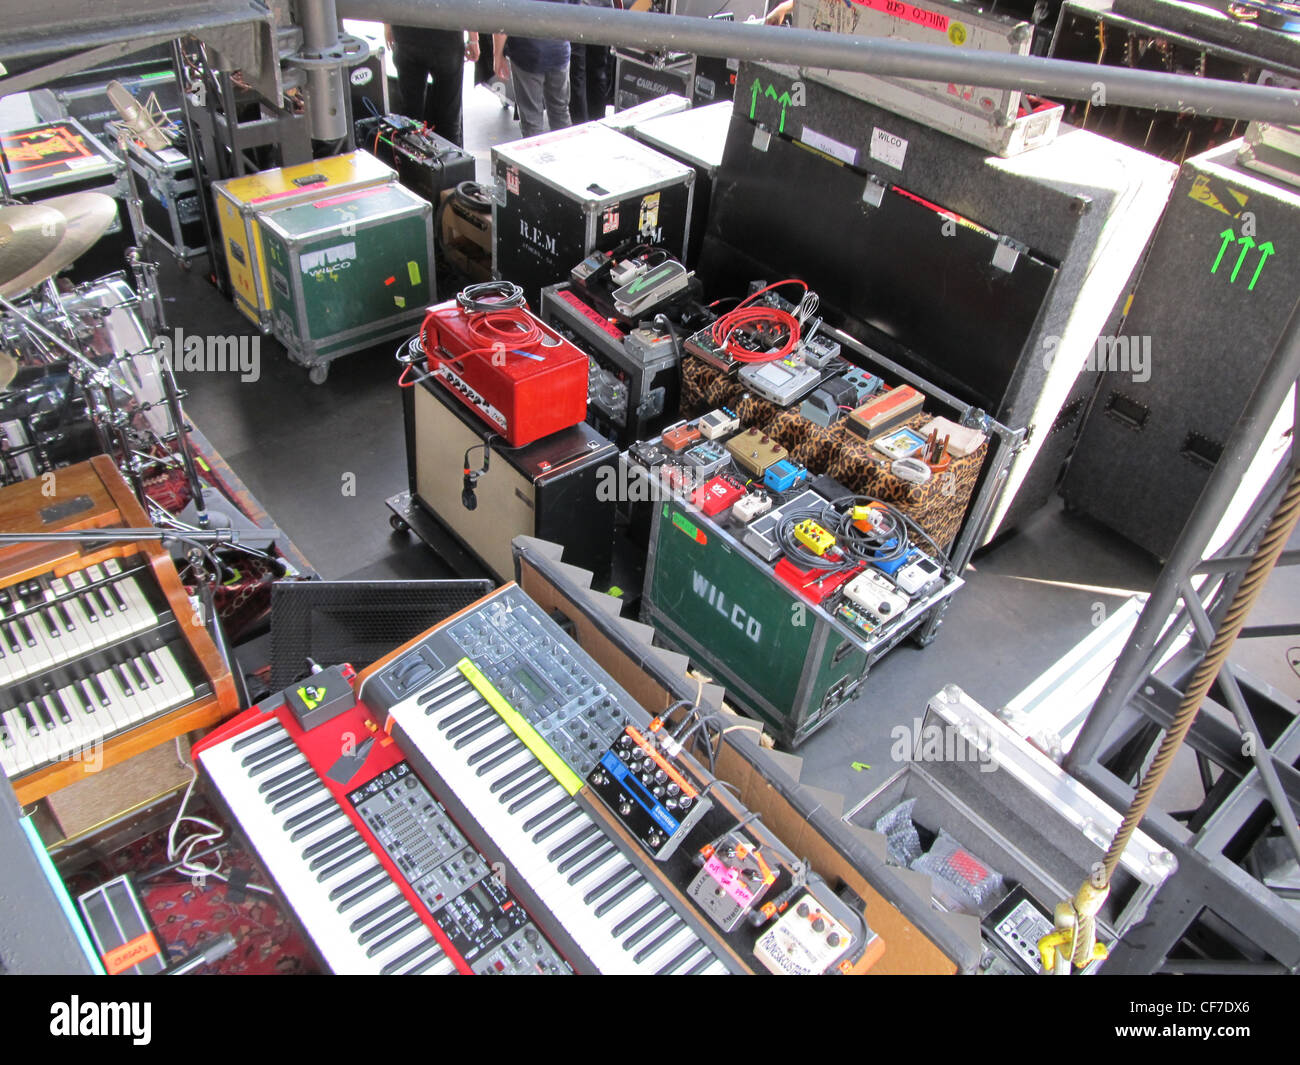 Stacks of keyboards and amplifiers at the Sasquatch festival. - Stock Image